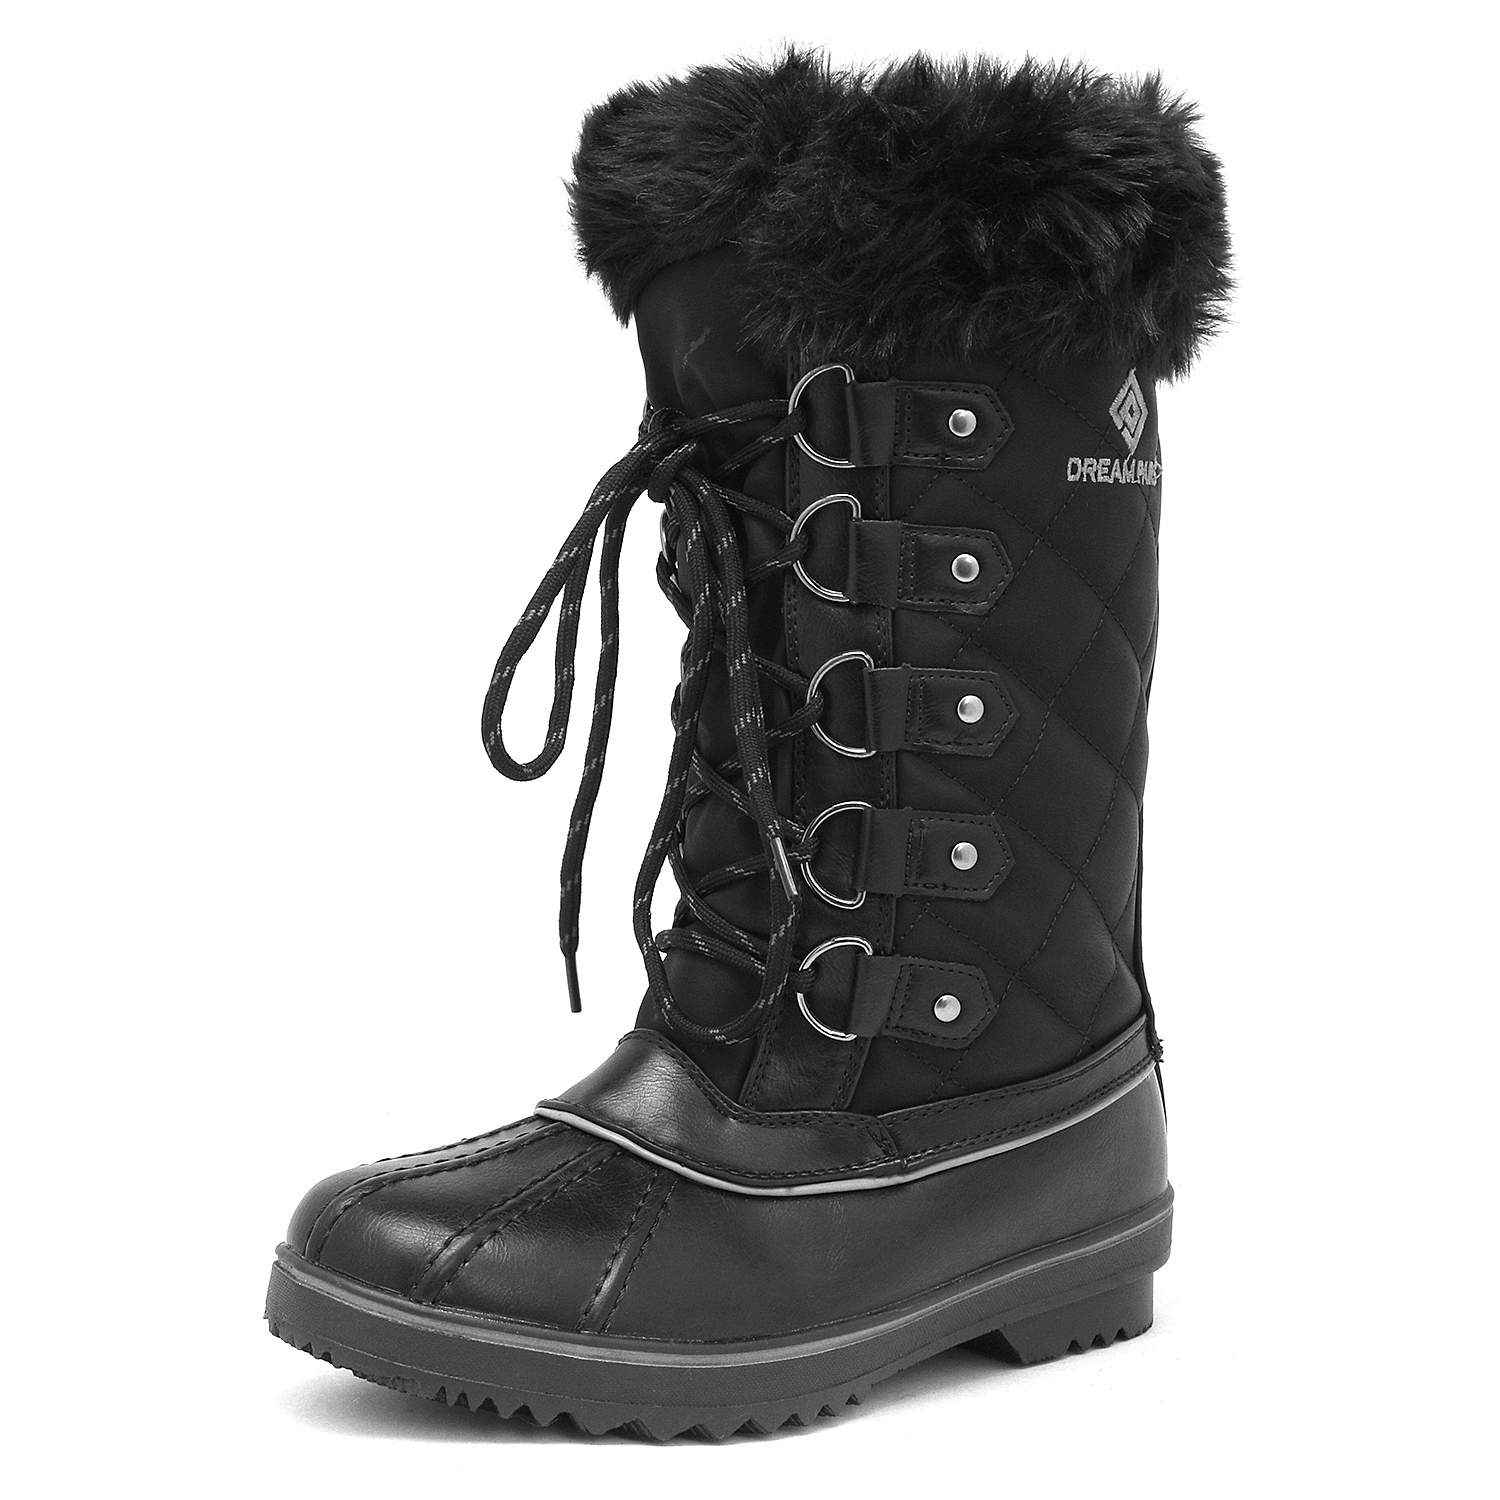 Fashion style Boots Snow women size 12 for woman